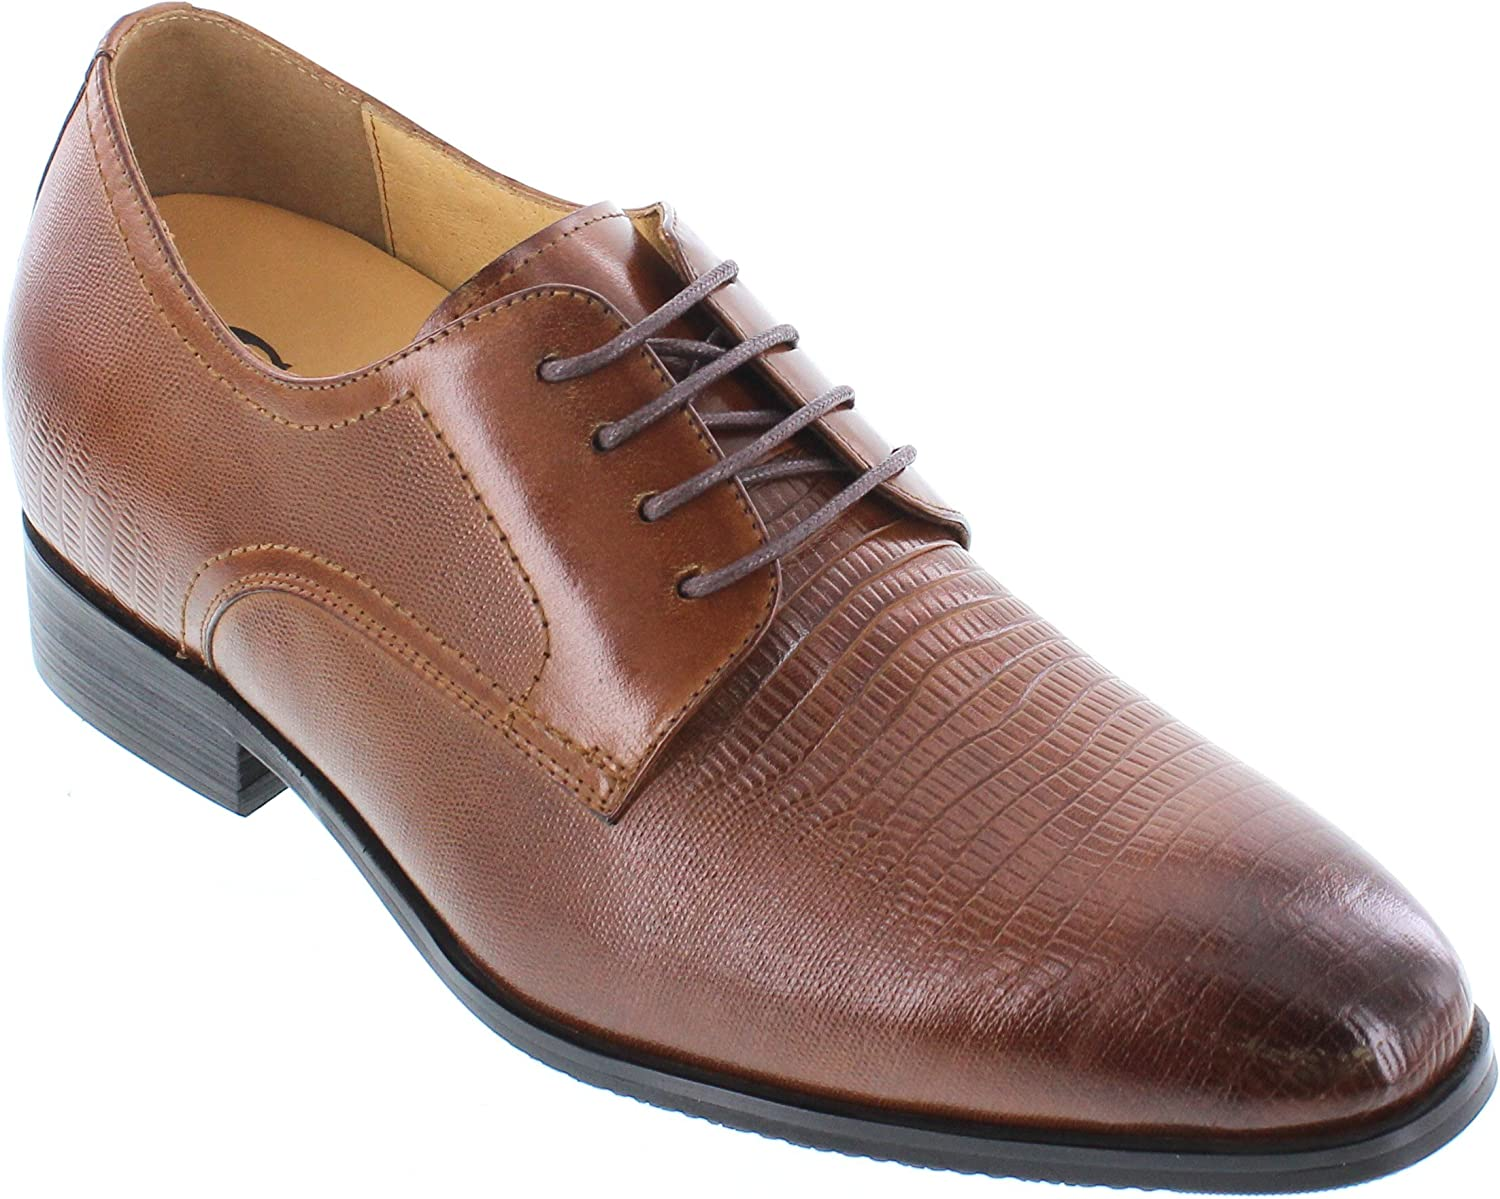 CALTO Men's Invisible Height Increasing Elevator shoes - Brown Premium Leather Lace-up Formal Oxfords - 3 Inches Taller - Y40203